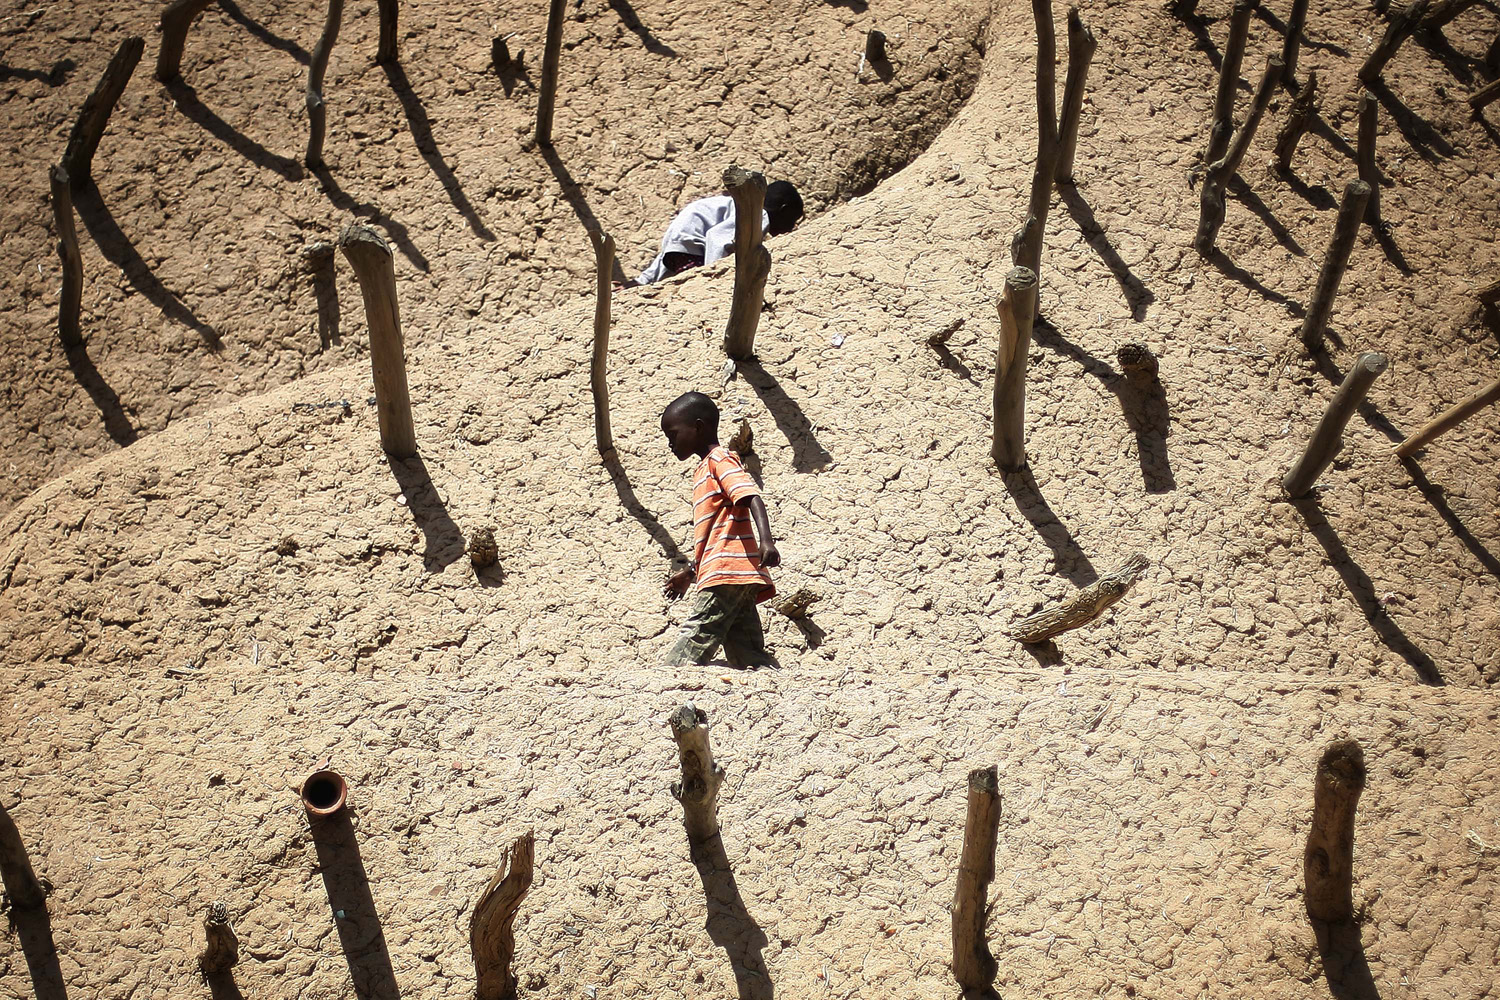 Feb. 15, 2013. Children walk on the Askia mausoleum, built in 1495 in Gao, northern Mali, one week after a suicide bomber on a motorcycle killed himself attempting to blow up an army checkpoint at the entrance of the town.